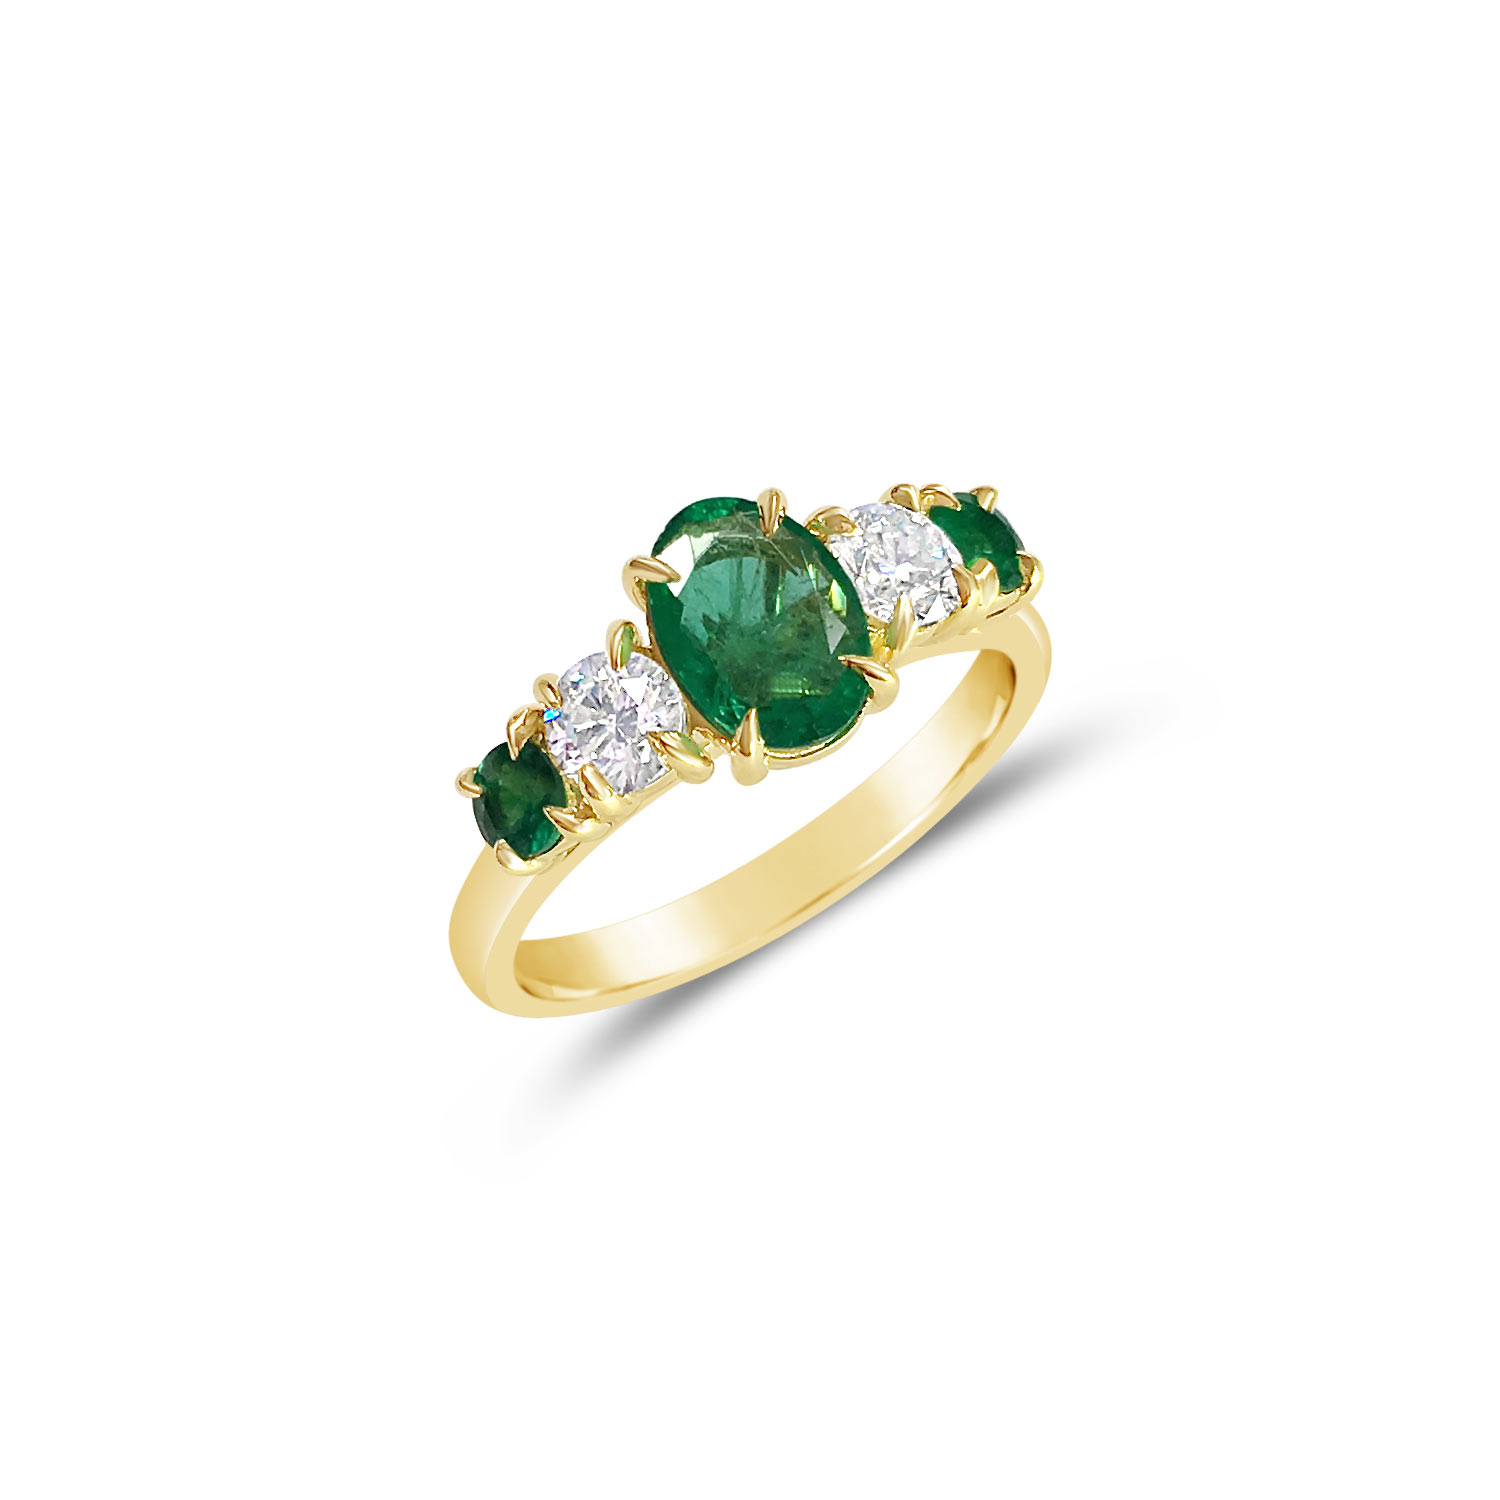 Bespoke emerald and diamond claw-set five-stone ring, mounted in 18ct yellow gold top